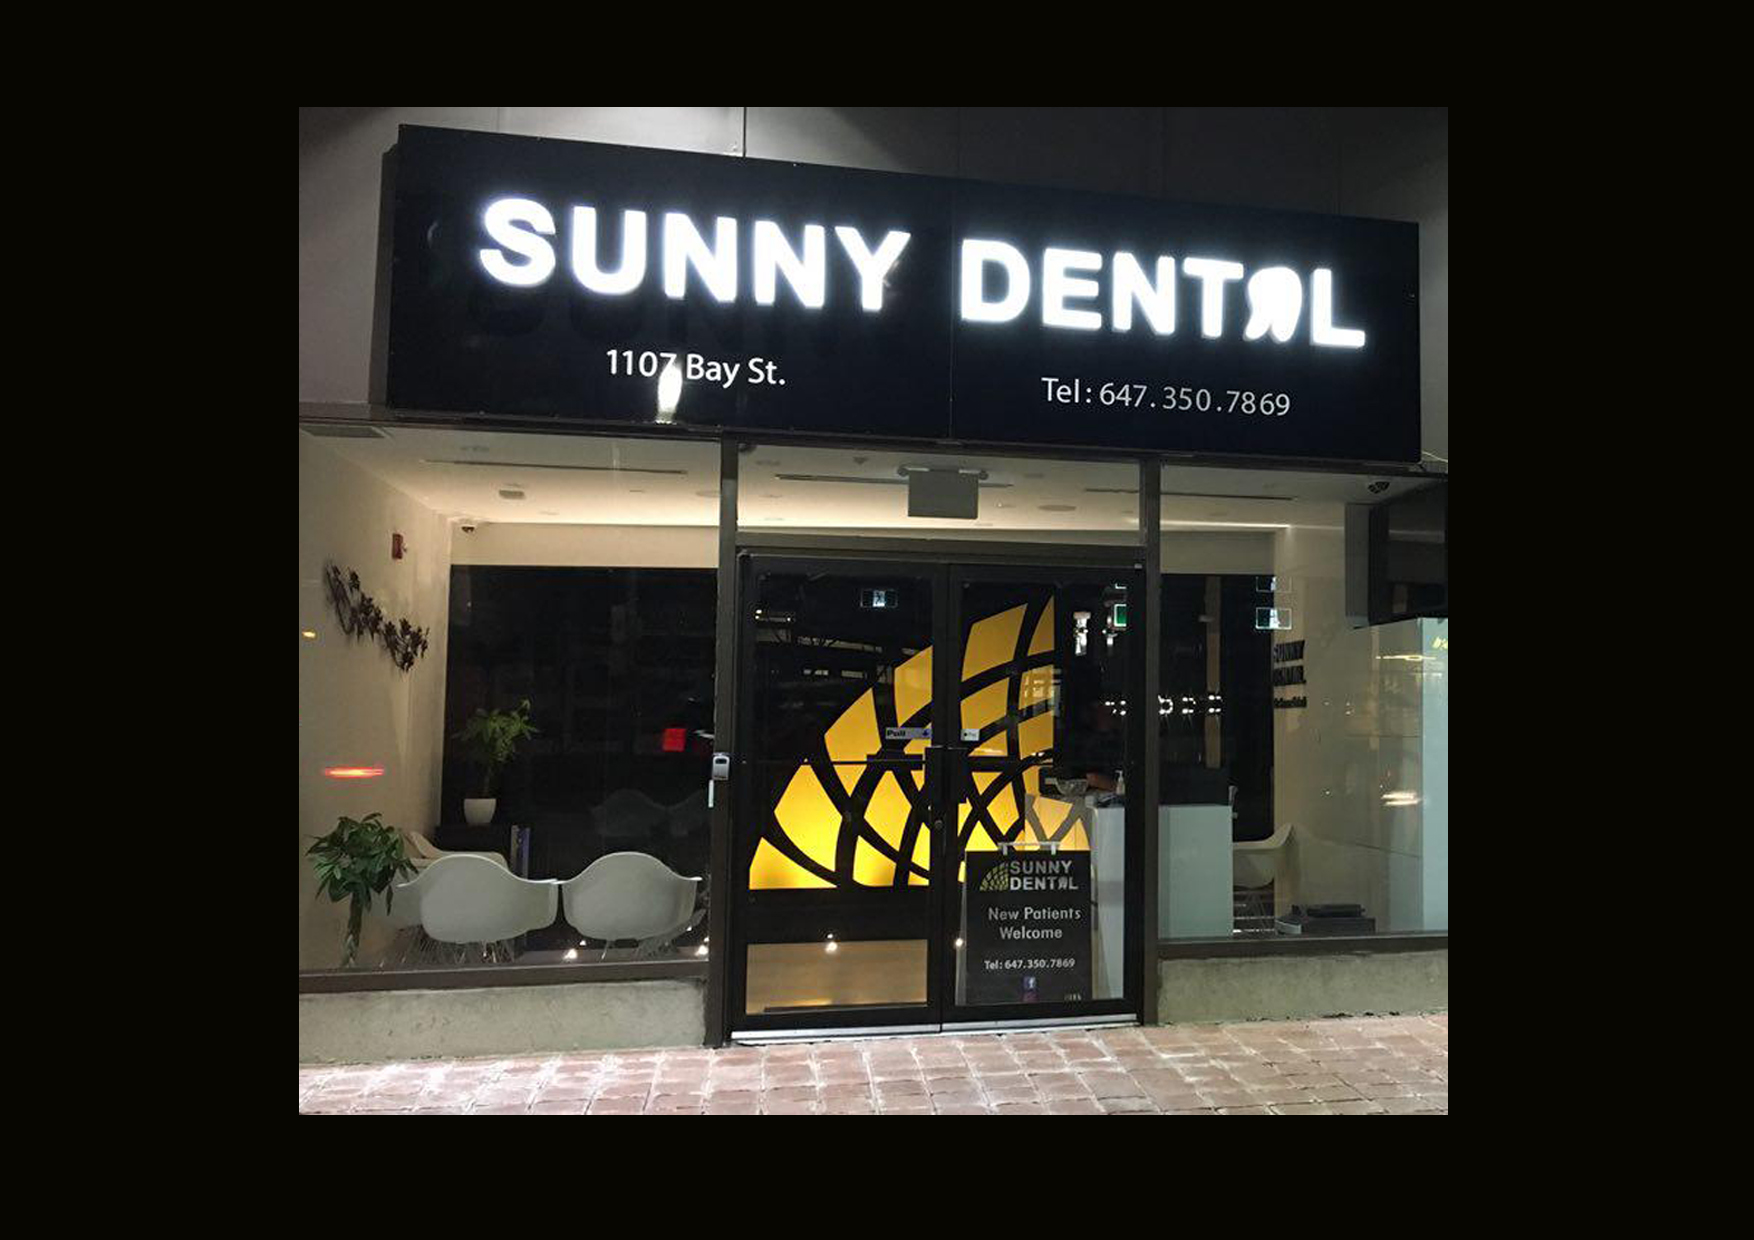 Light Box-Sunny Dental